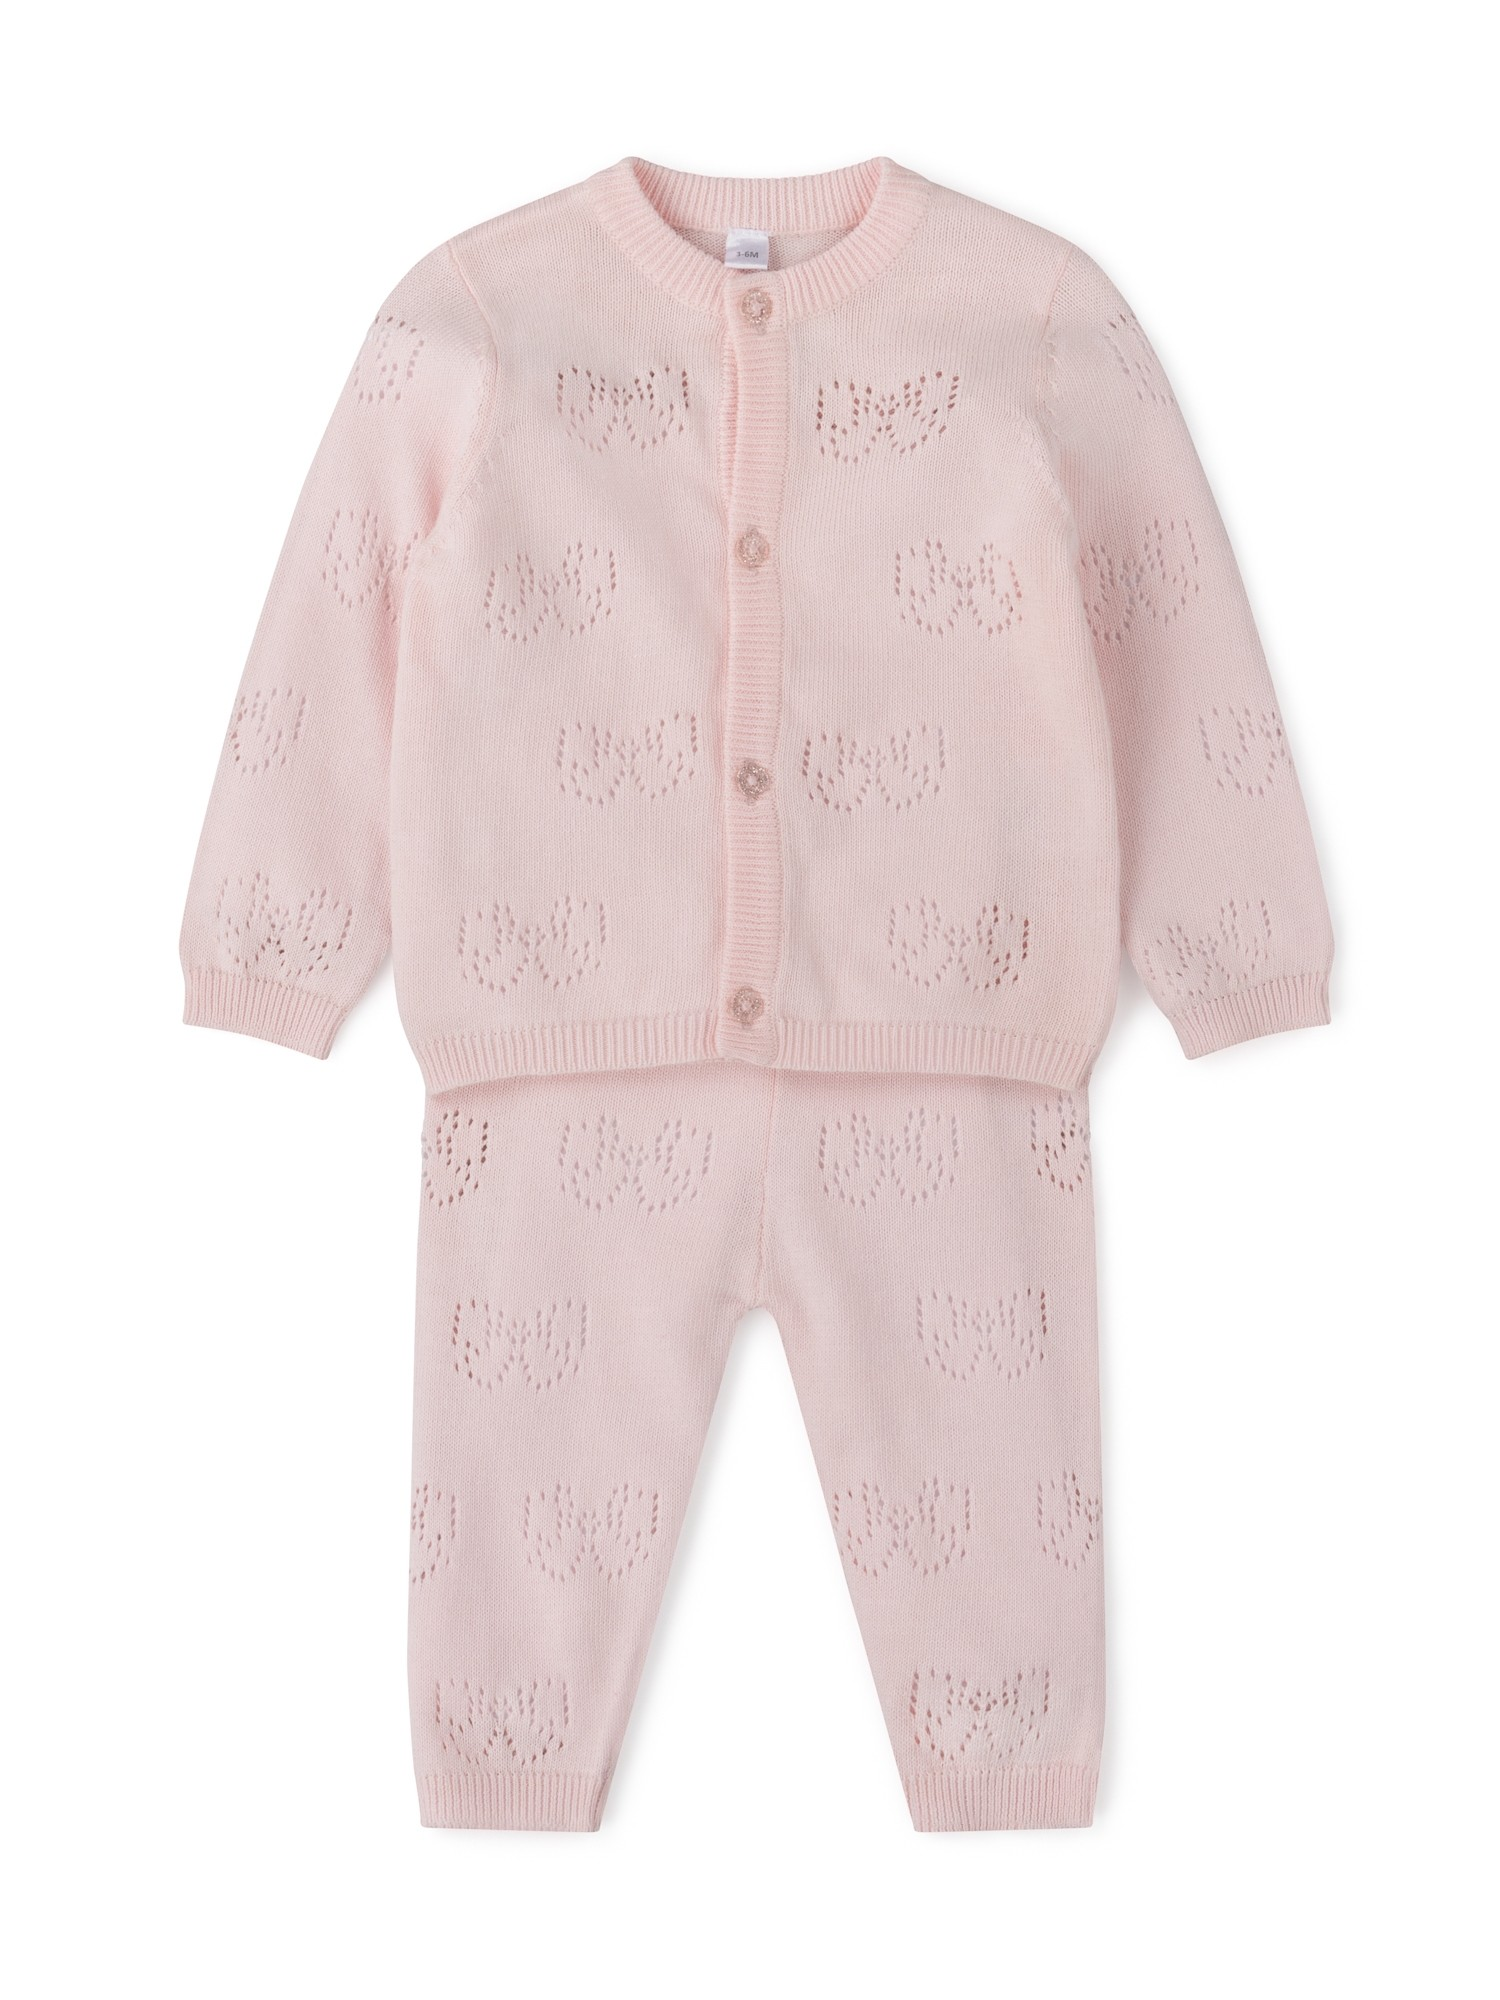 Rock a Bye Baby Boutique 'Bow' Baby Girls Cardigan and Leggings Set PACK OF 6